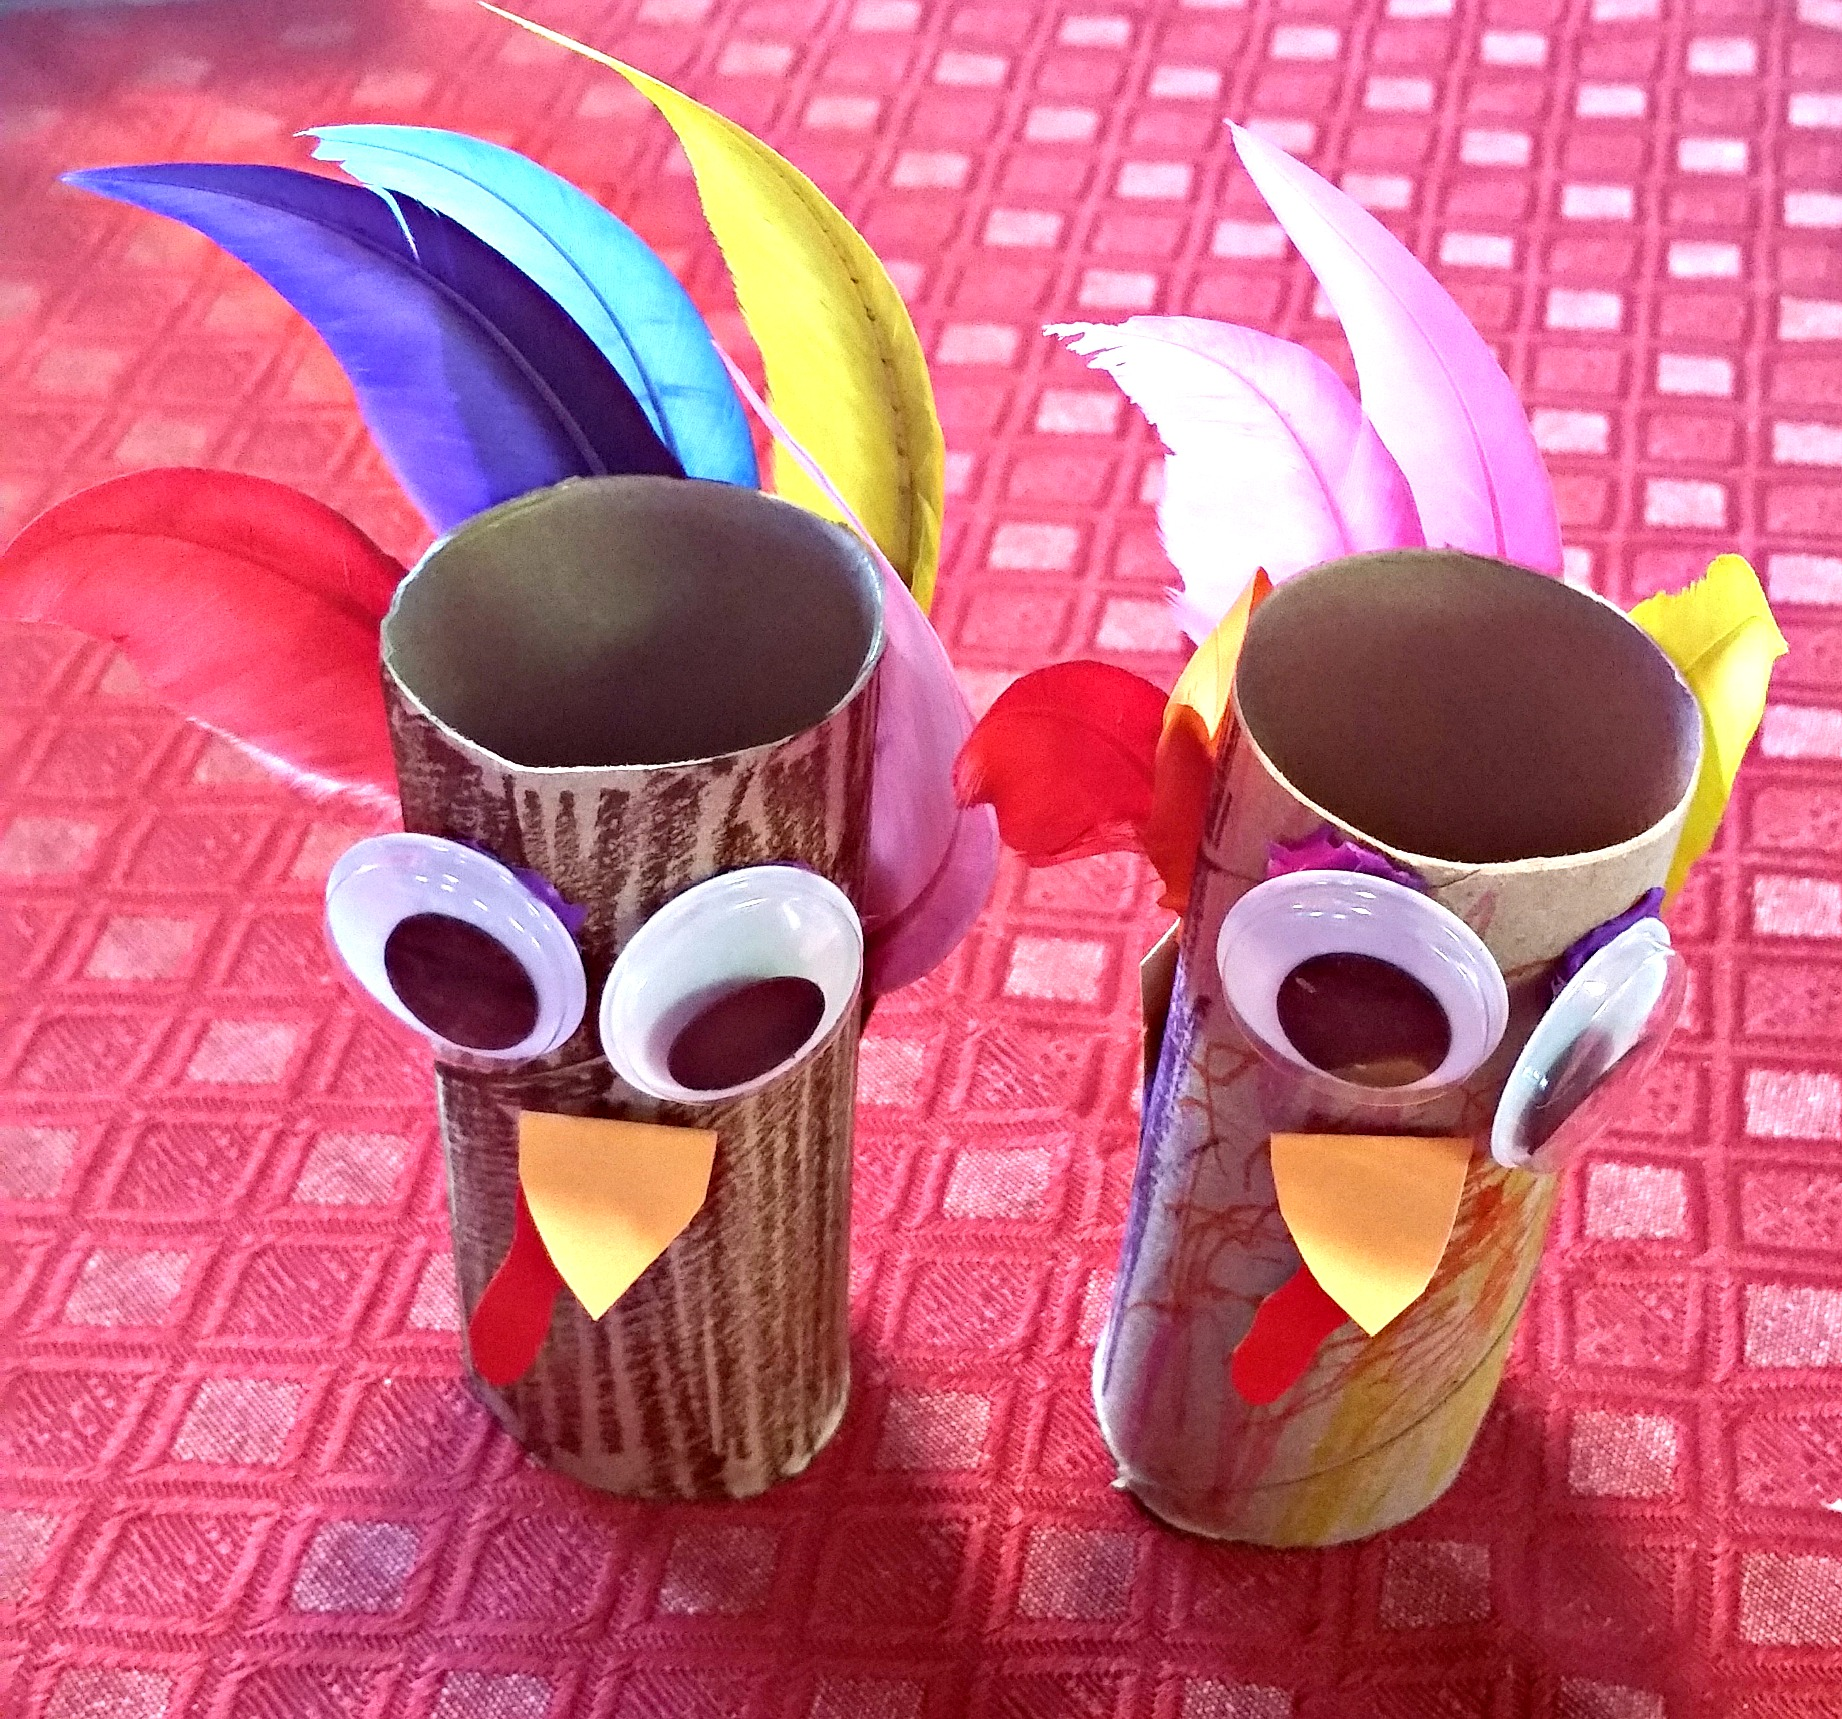 It 39 s turkey time toilet paper roll craft for Toilet paper roll crafts thanksgiving